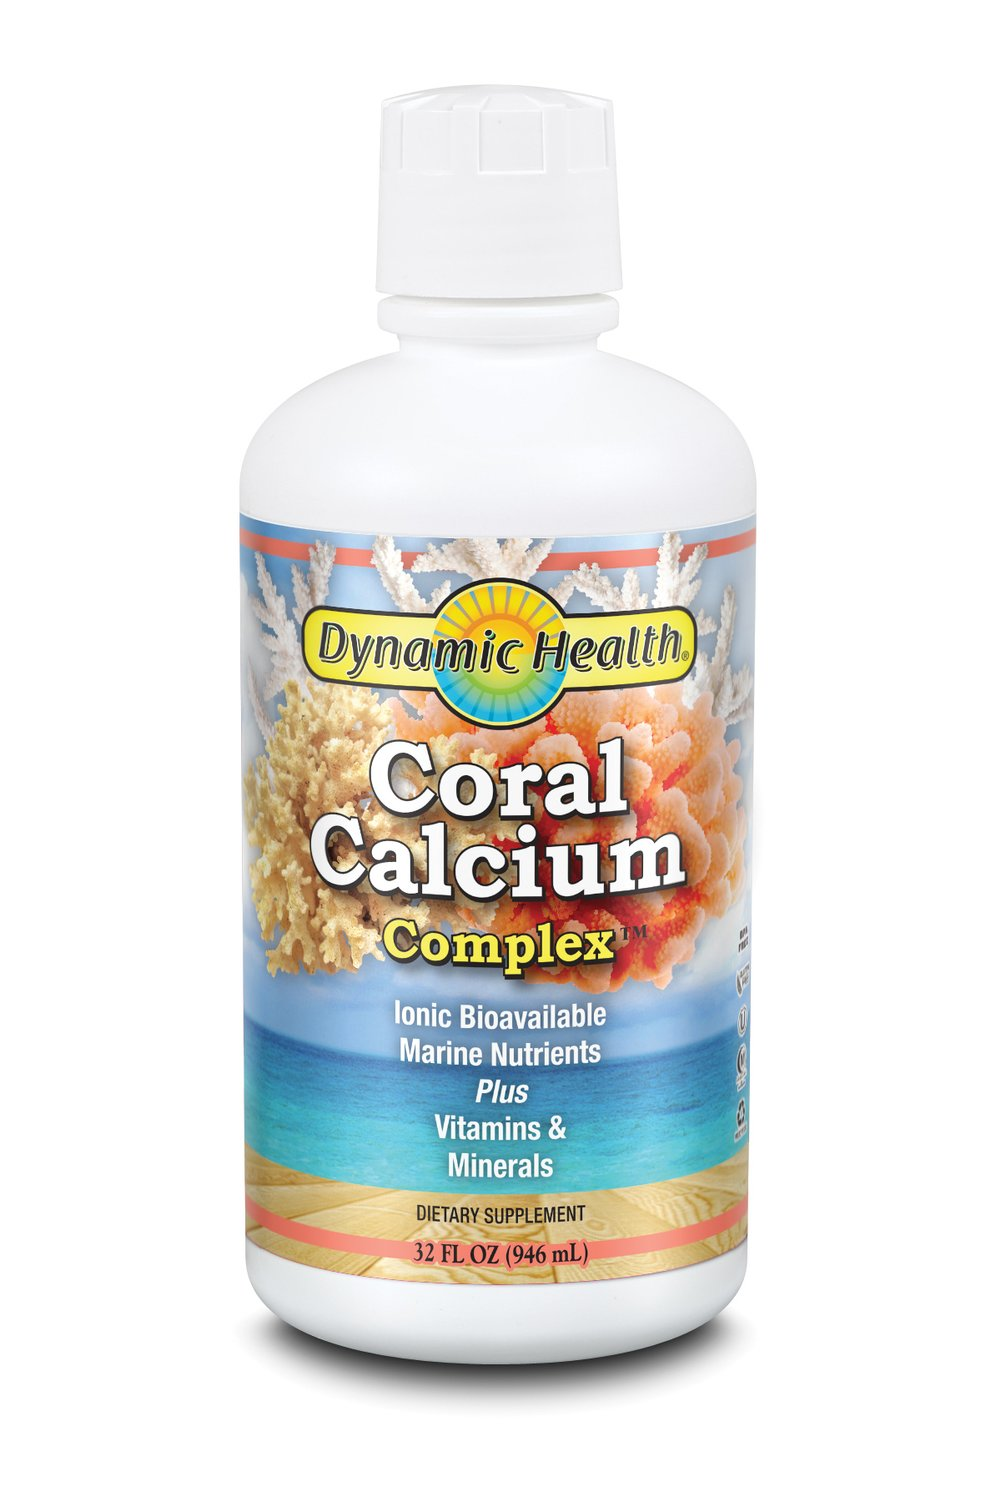 Coral Calcium Complex <p><strong>From the Manufacturer's Label: </strong></p><p>100% PURE BIOAVAILABLE OKINAWAN CORAL Maximum absorption liquid formula dynamic health coral calcium complex.*</p><p>Dynamic Health Laboratories, Inc. Coral Calcium Complex liquid formula offers a synergistic way to satisfy the body's thirst for natural elemental calcium, nutrient rich ionic trace minerals and essential vitamins. </p><p>Everyday stresses i